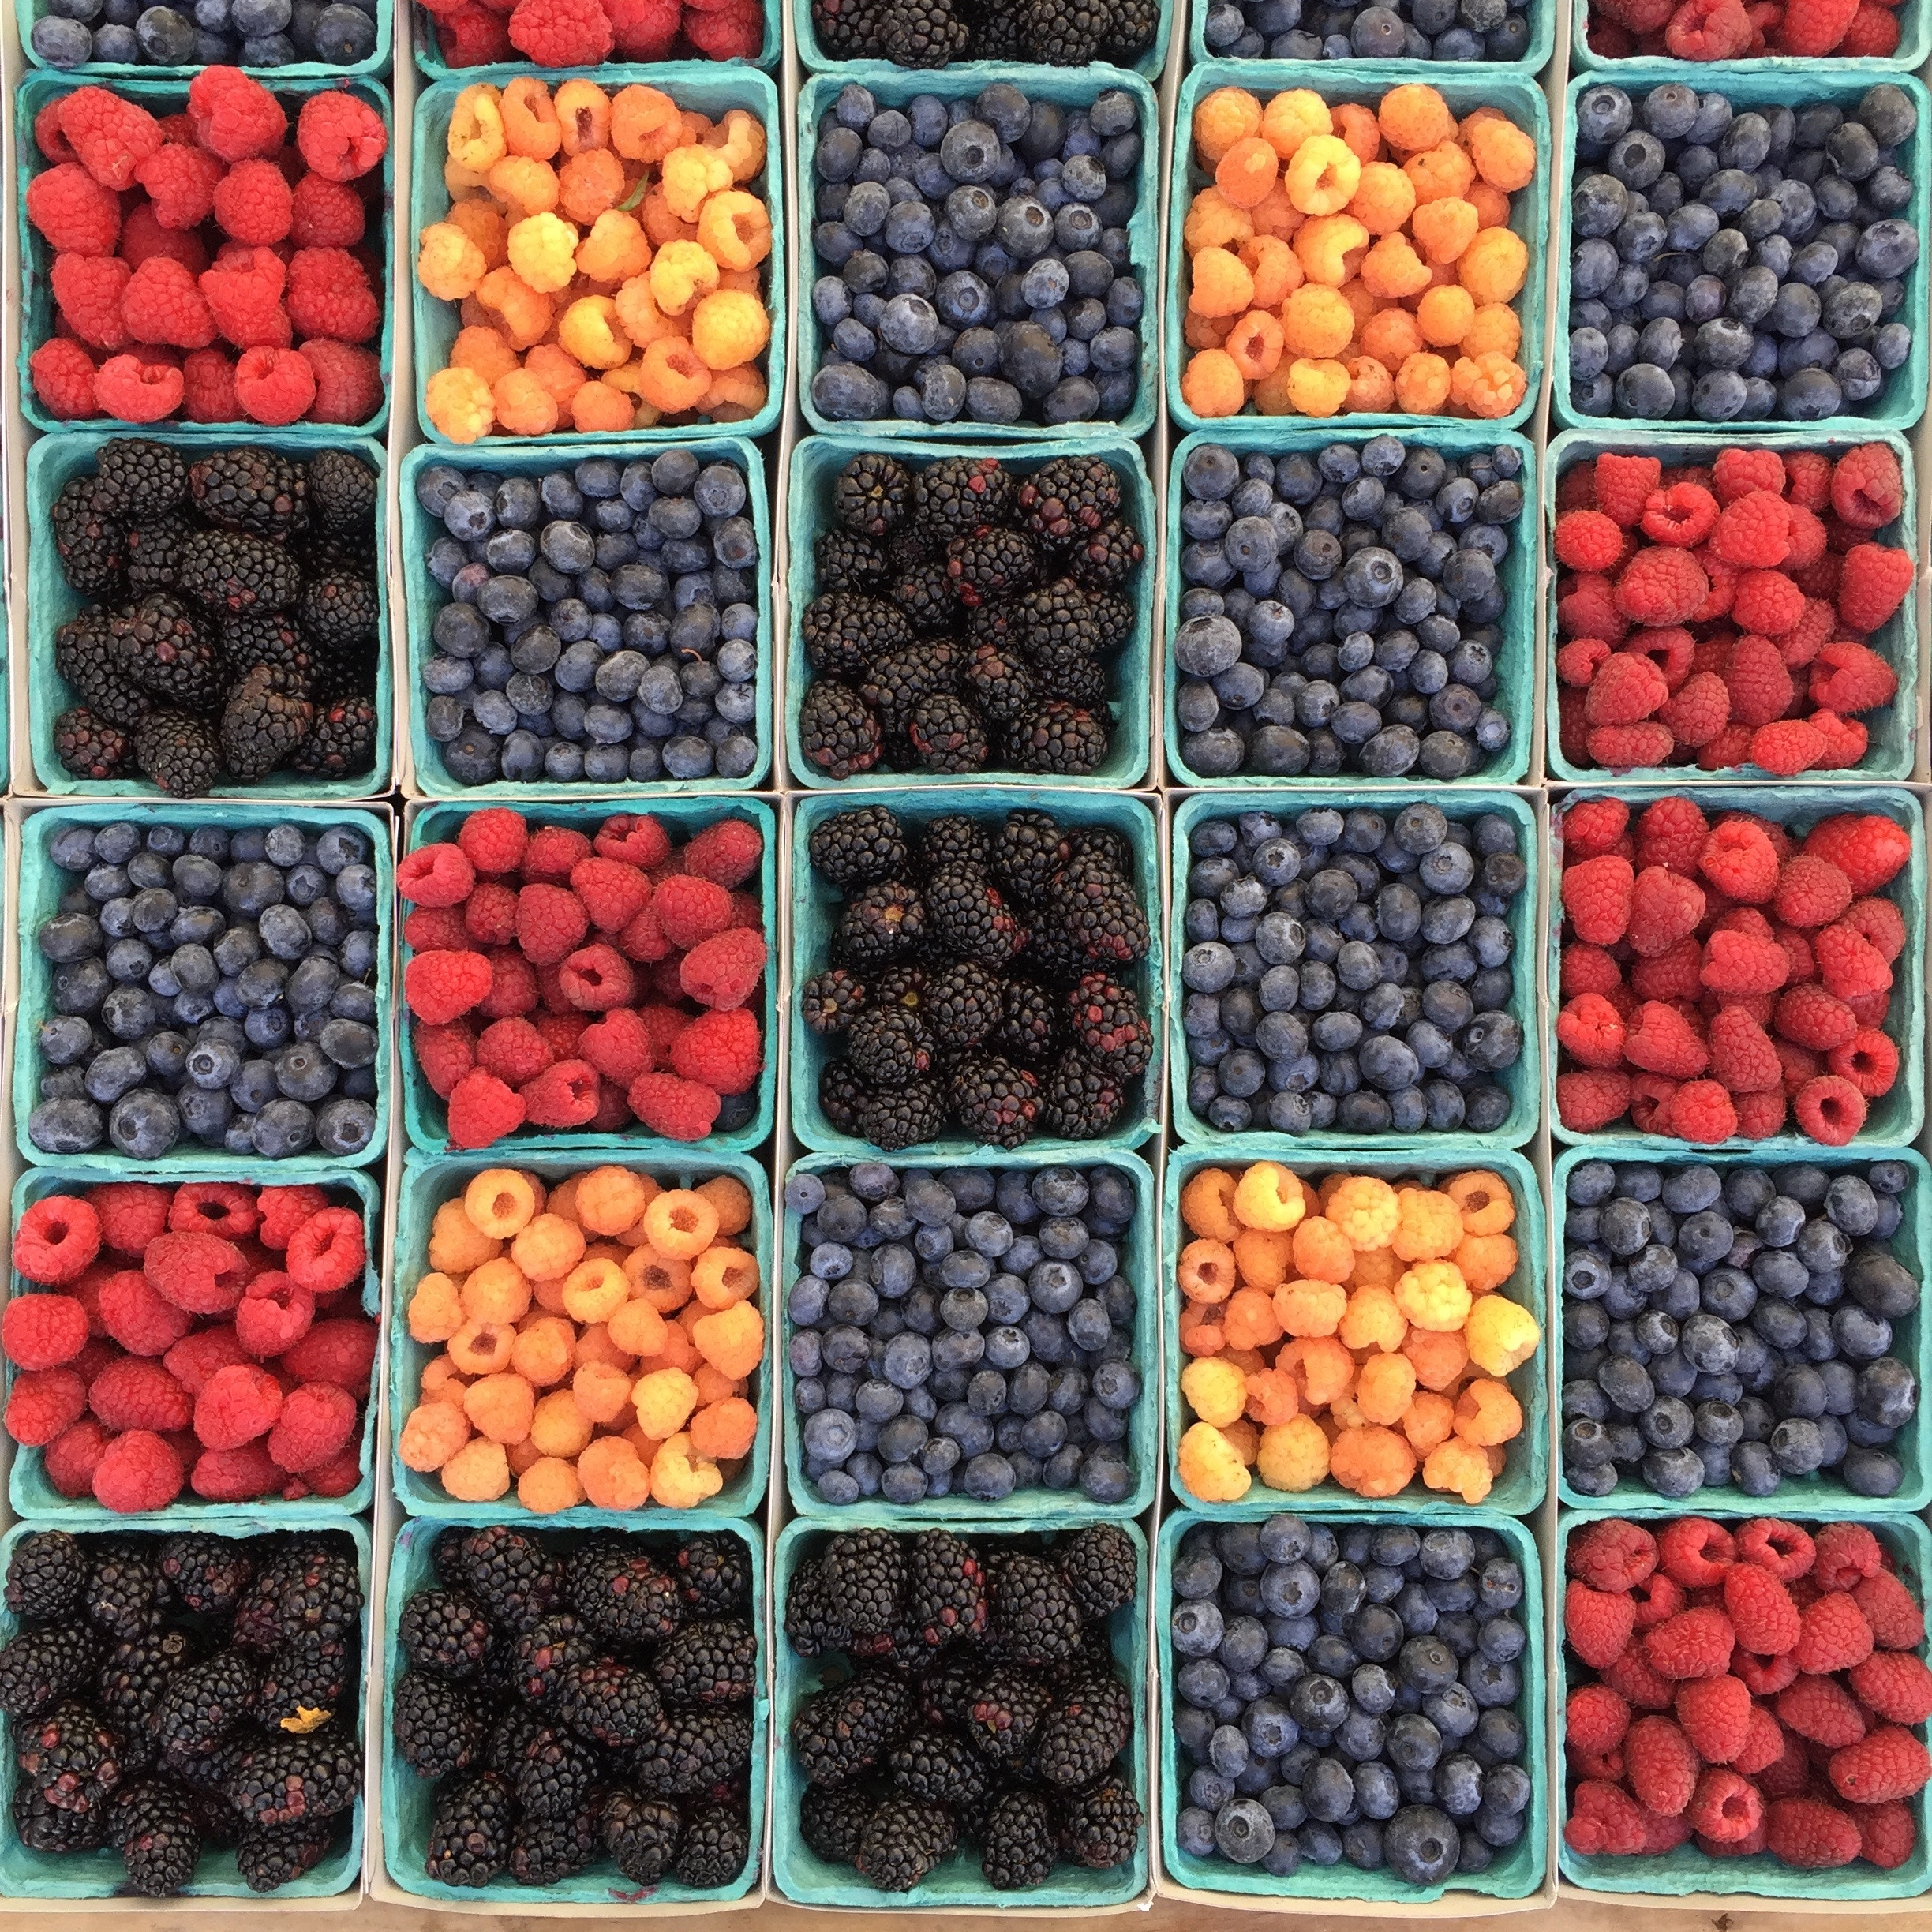 boxes of blueberries, raspberries, blackberries, and some orange ones too